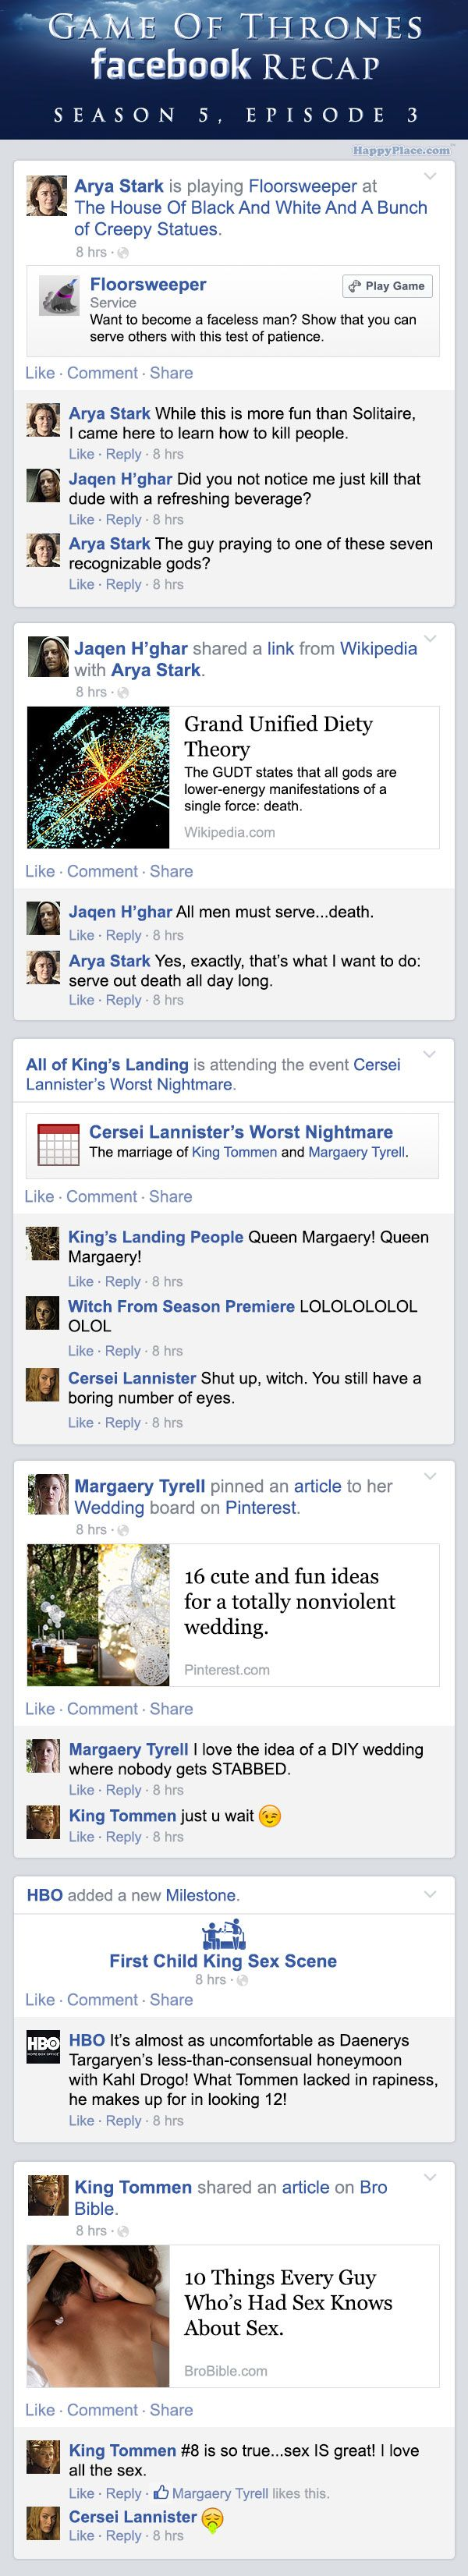 If Game of Thrones took place entirely on Facebook — Season 5